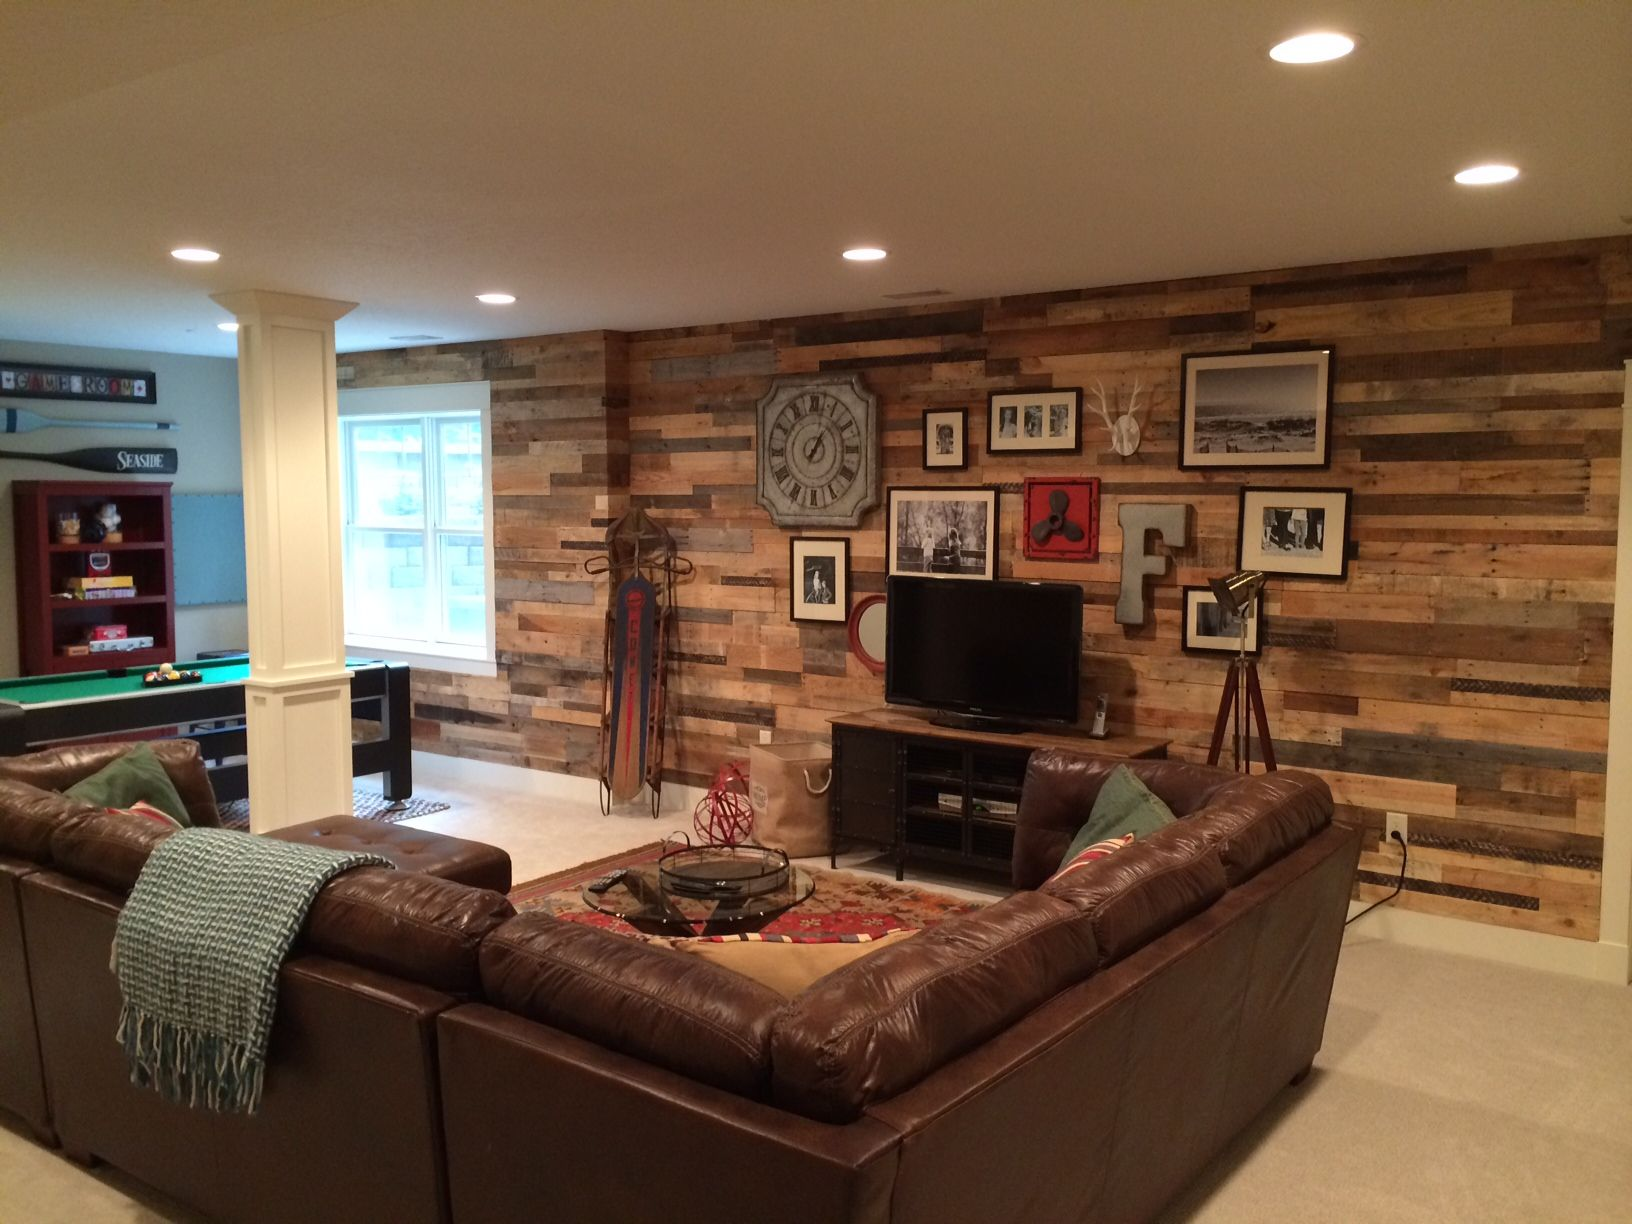 Wood Walls In Living Room You Can Also Make Your Room Insulated With Wood Wall Paneling